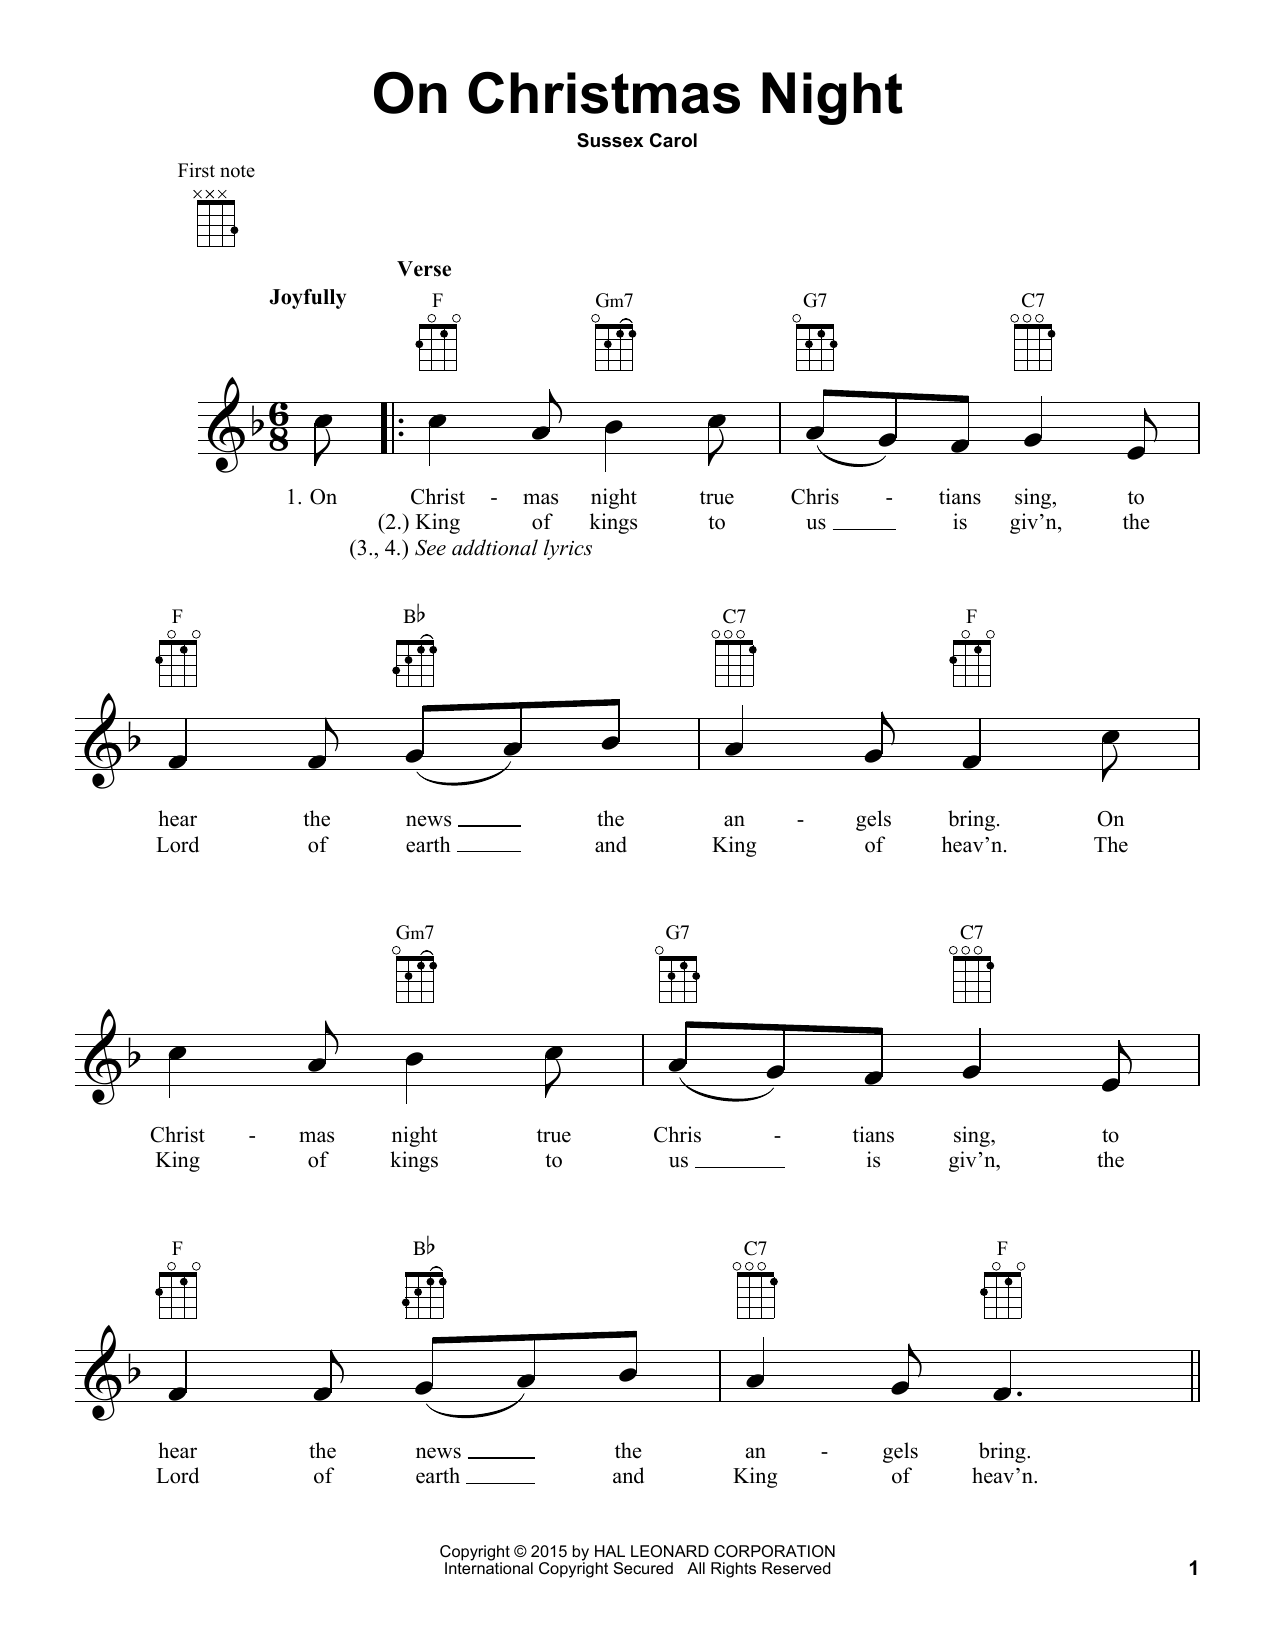 Sussex Carol On Christmas Night sheet music notes and chords. Download Printable PDF.